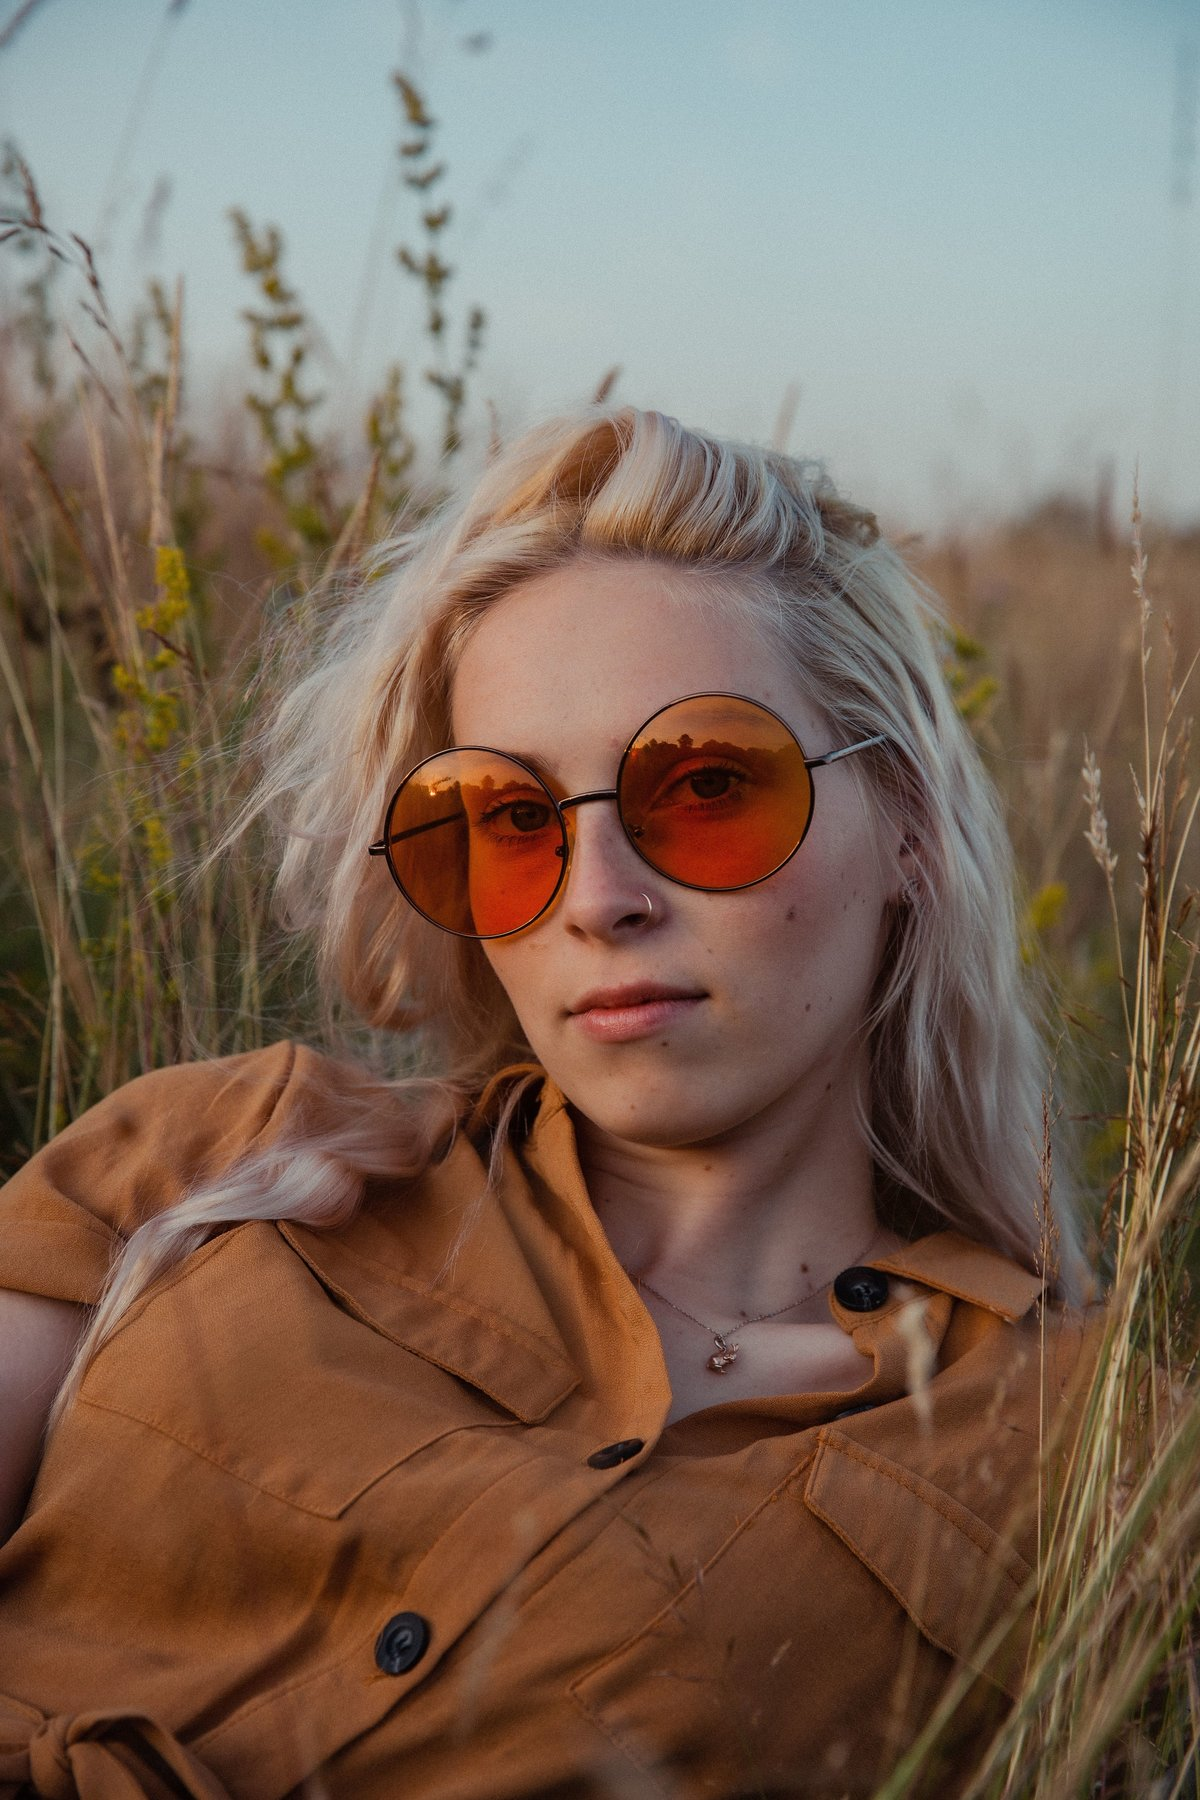 Amber sitting in the grass at golden hour, wearing orange sunglasses